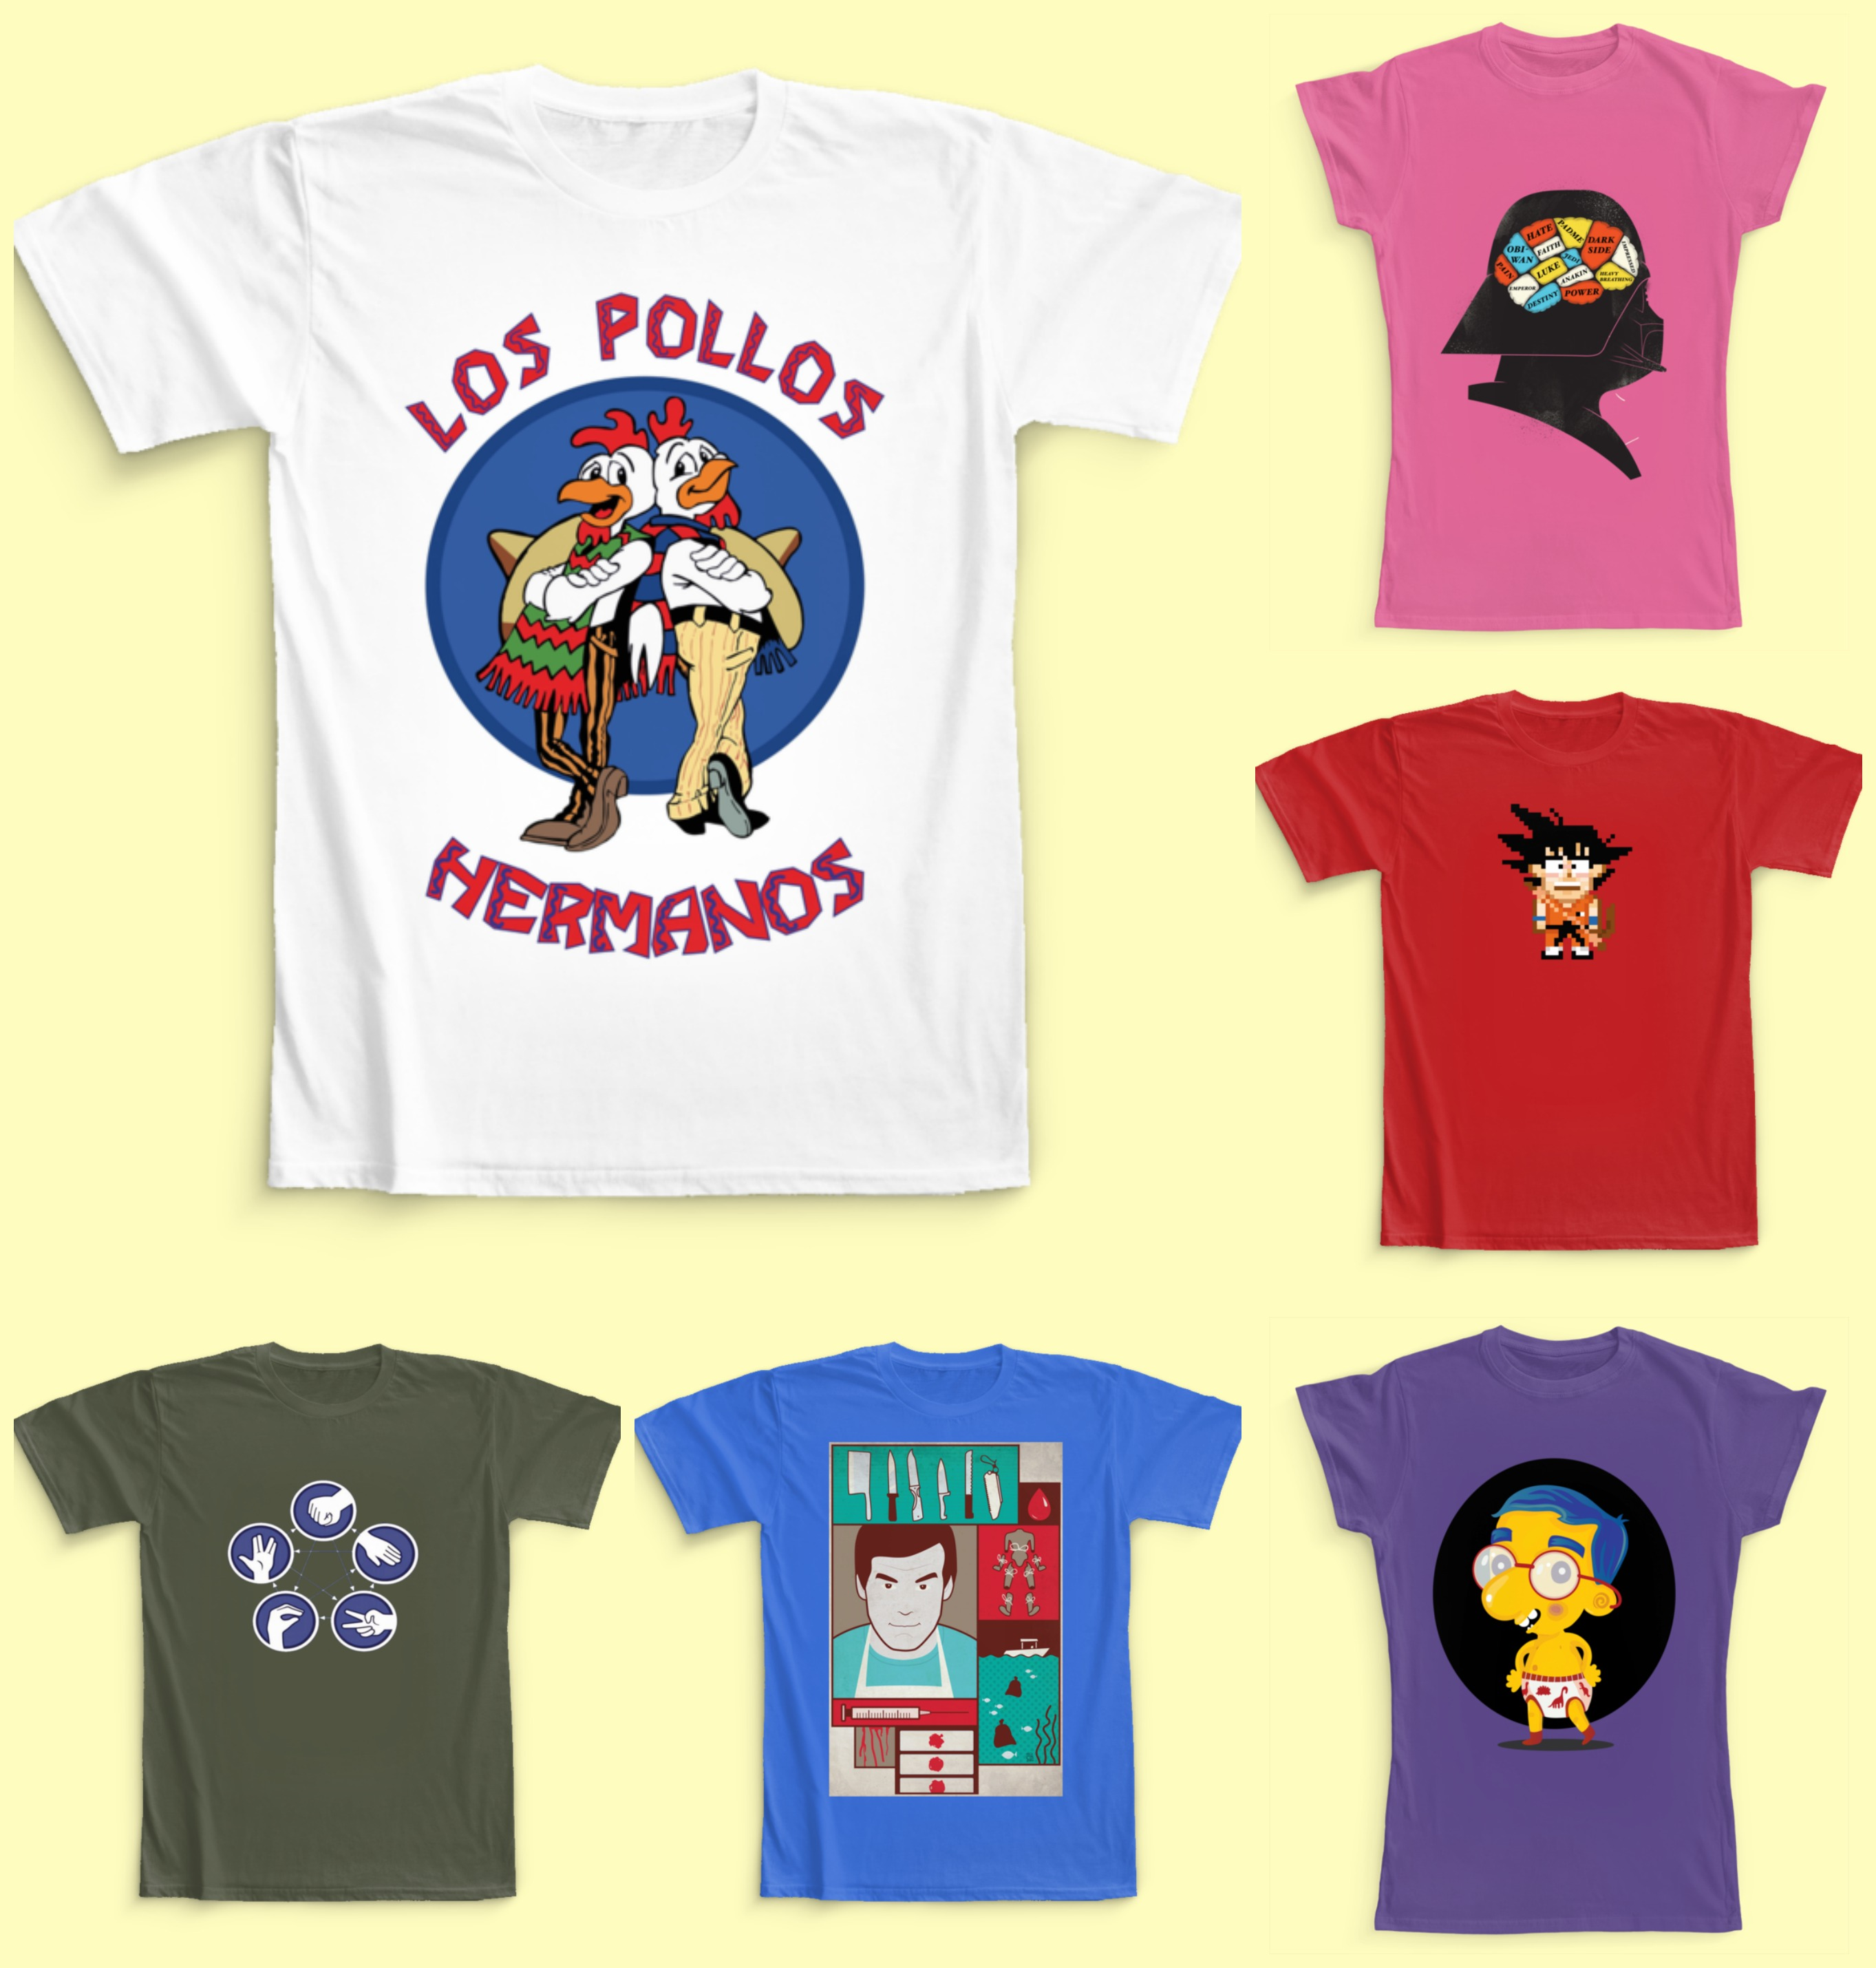 camisetas de cine, camisetas de series, merchandising series, camisetas de peliculas originales, camisetas simpaticas, camisetas para chica, camisetas para chico, camisetas para niño, breaking bad, los pollos hermanos, star wars, batman, los simpson, the big bang theory